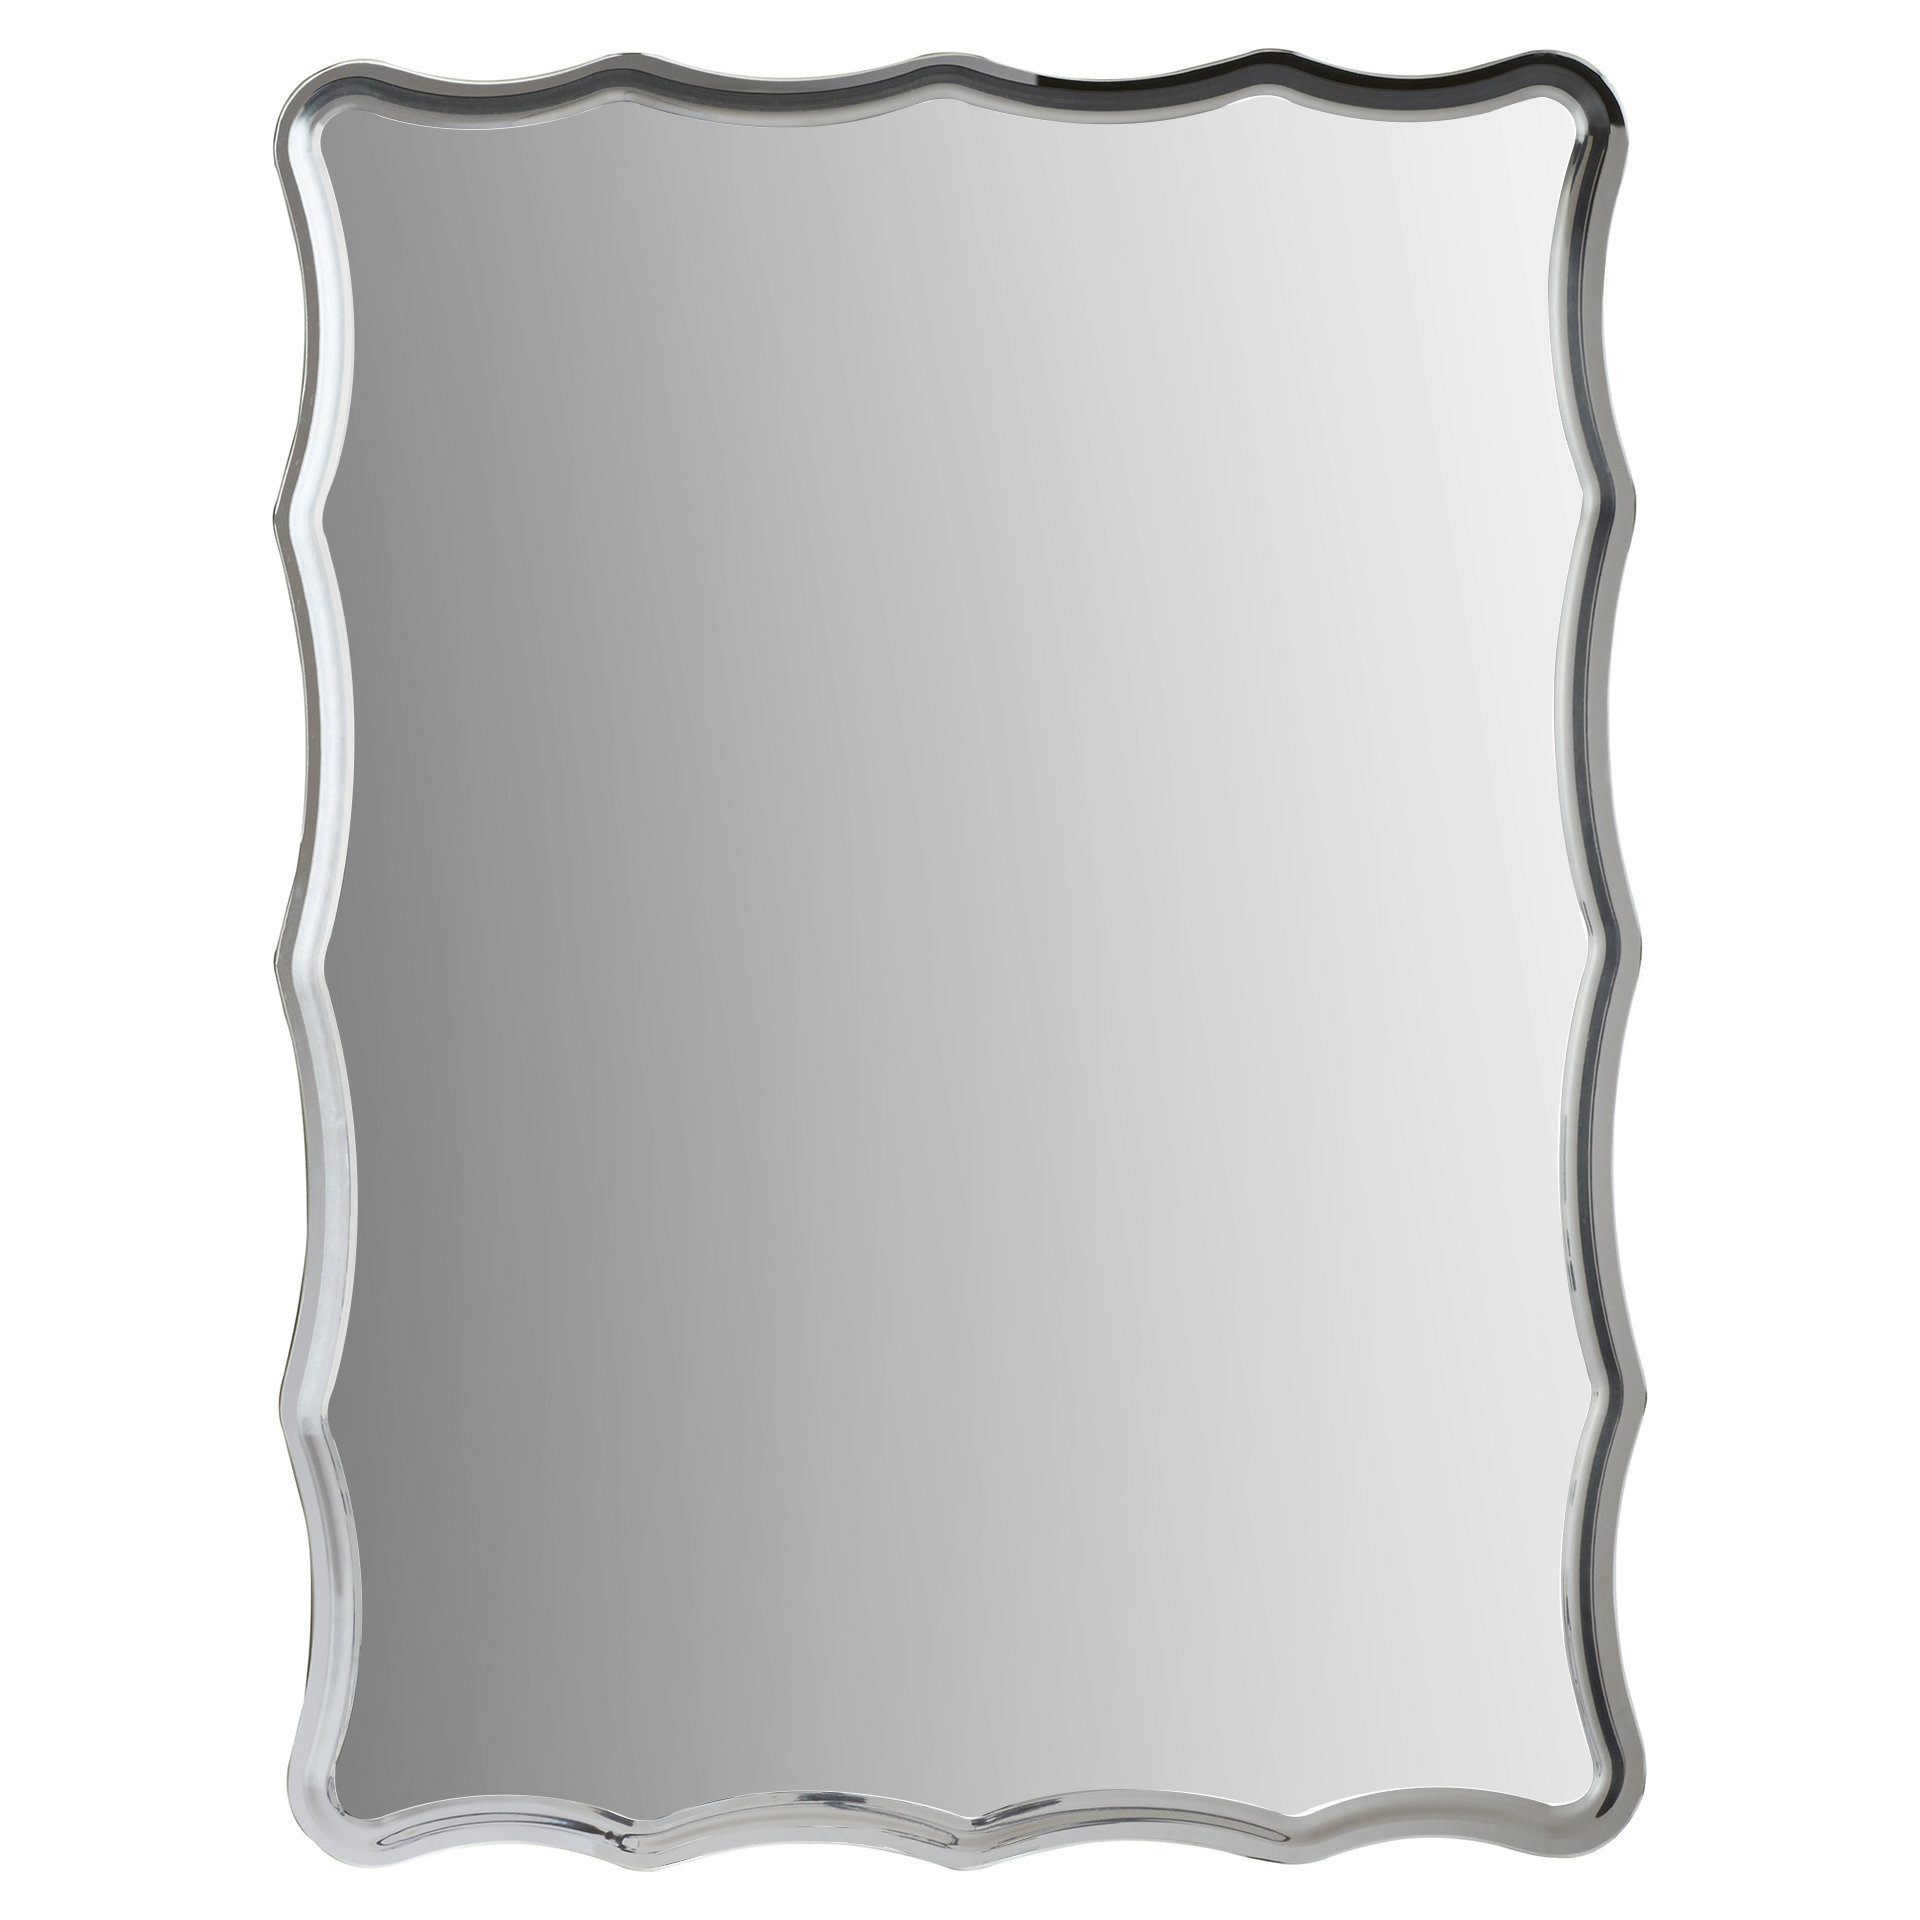 Glam Mirrors | Joss & Main Throughout Caja Rectangle Glass Frame Wall Mirrors (View 7 of 30)